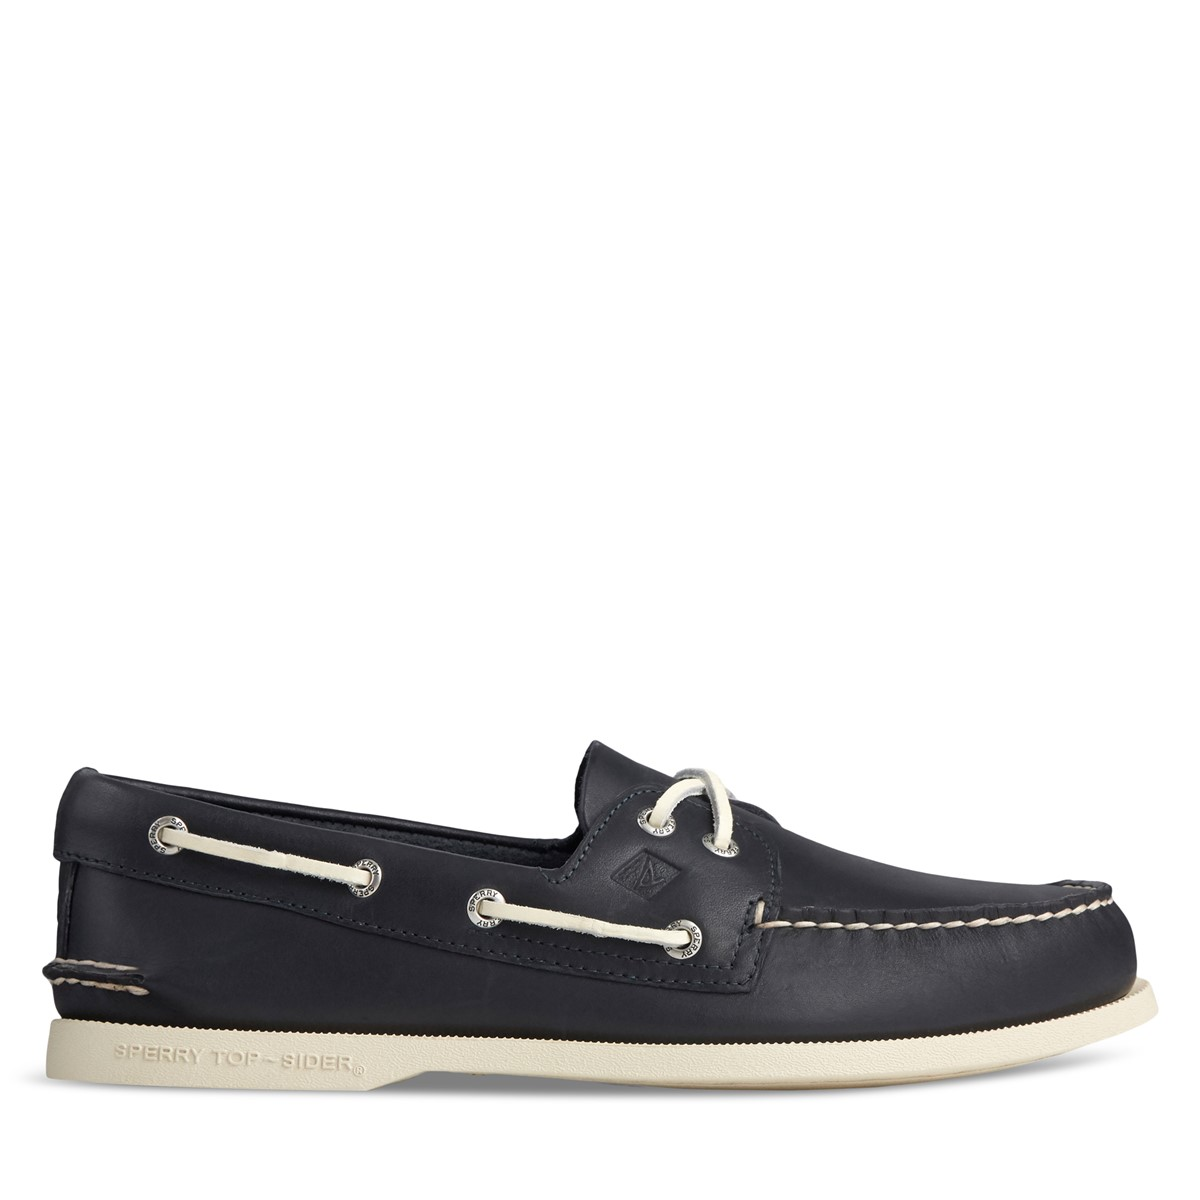 Chaussures 2 Eye Boat marine pour hommes